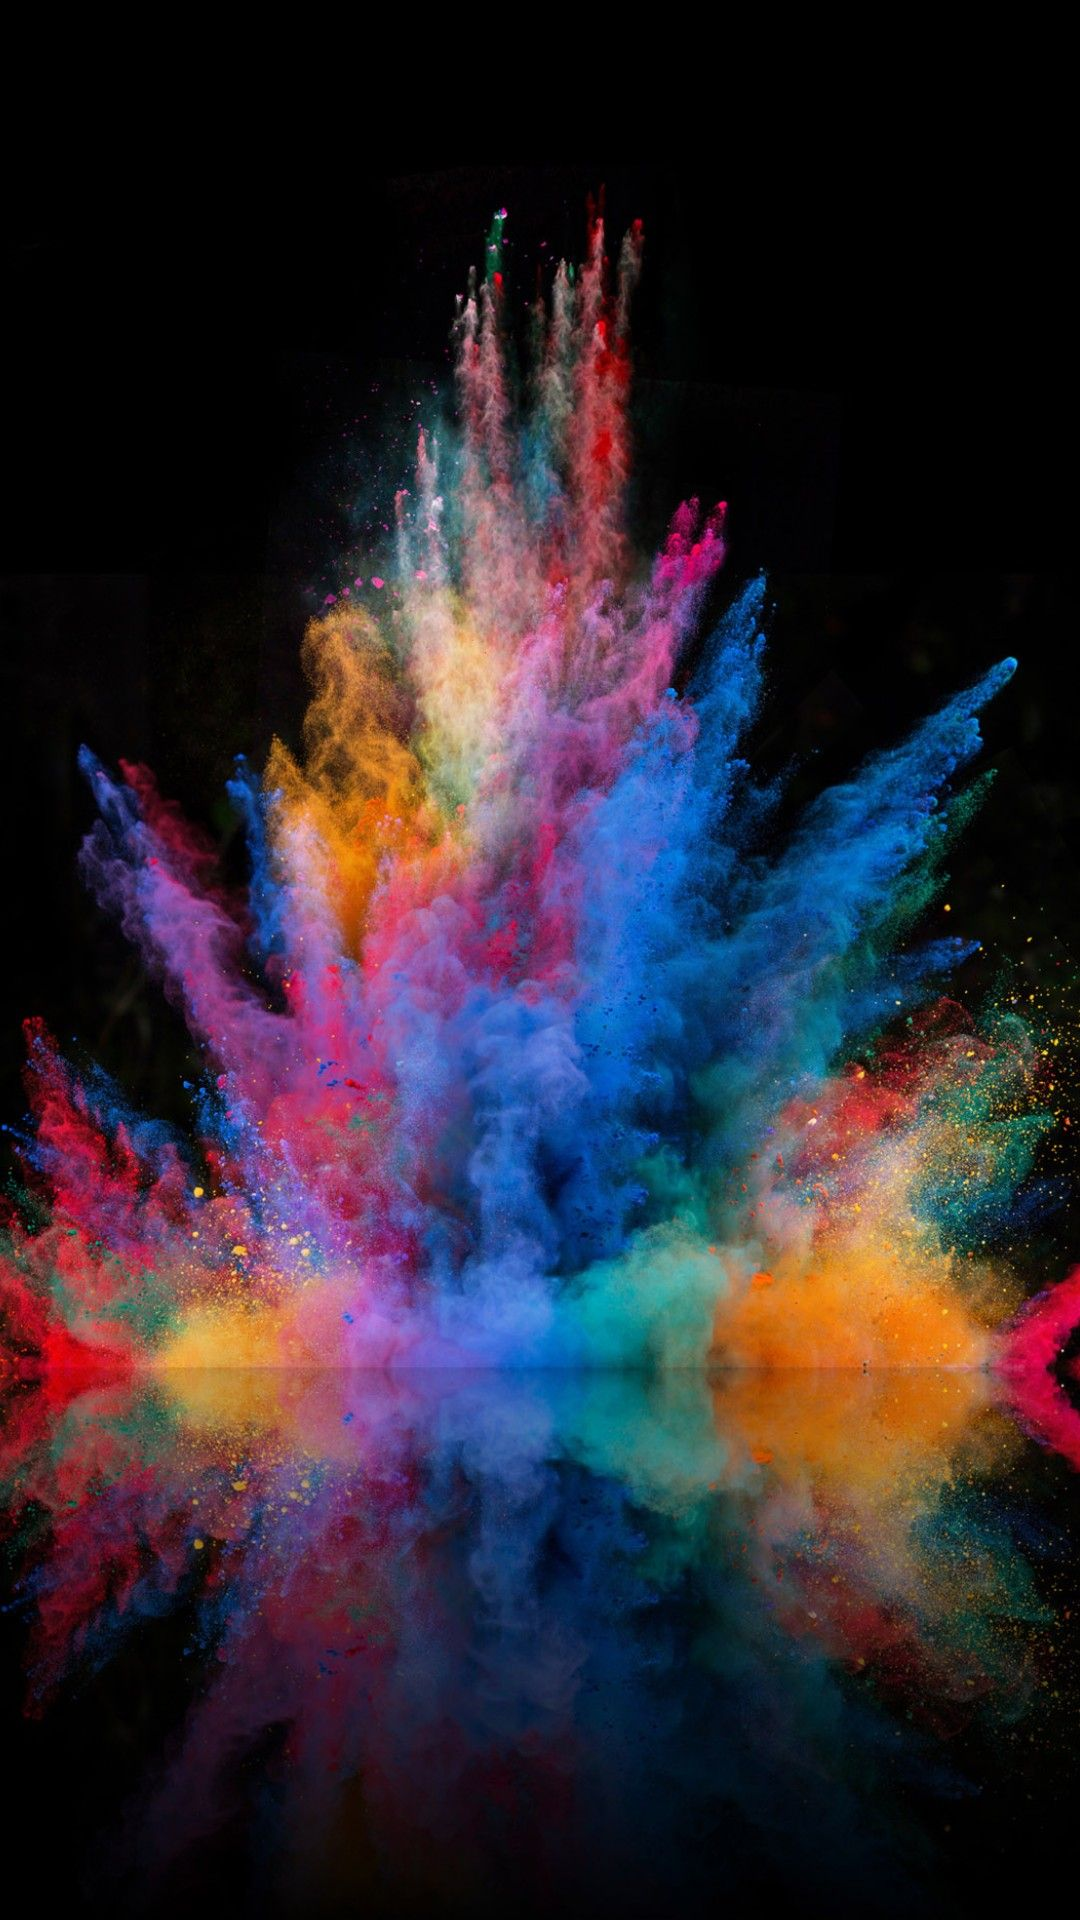 Colour explotion Abstract iphone wallpaper, Colorful